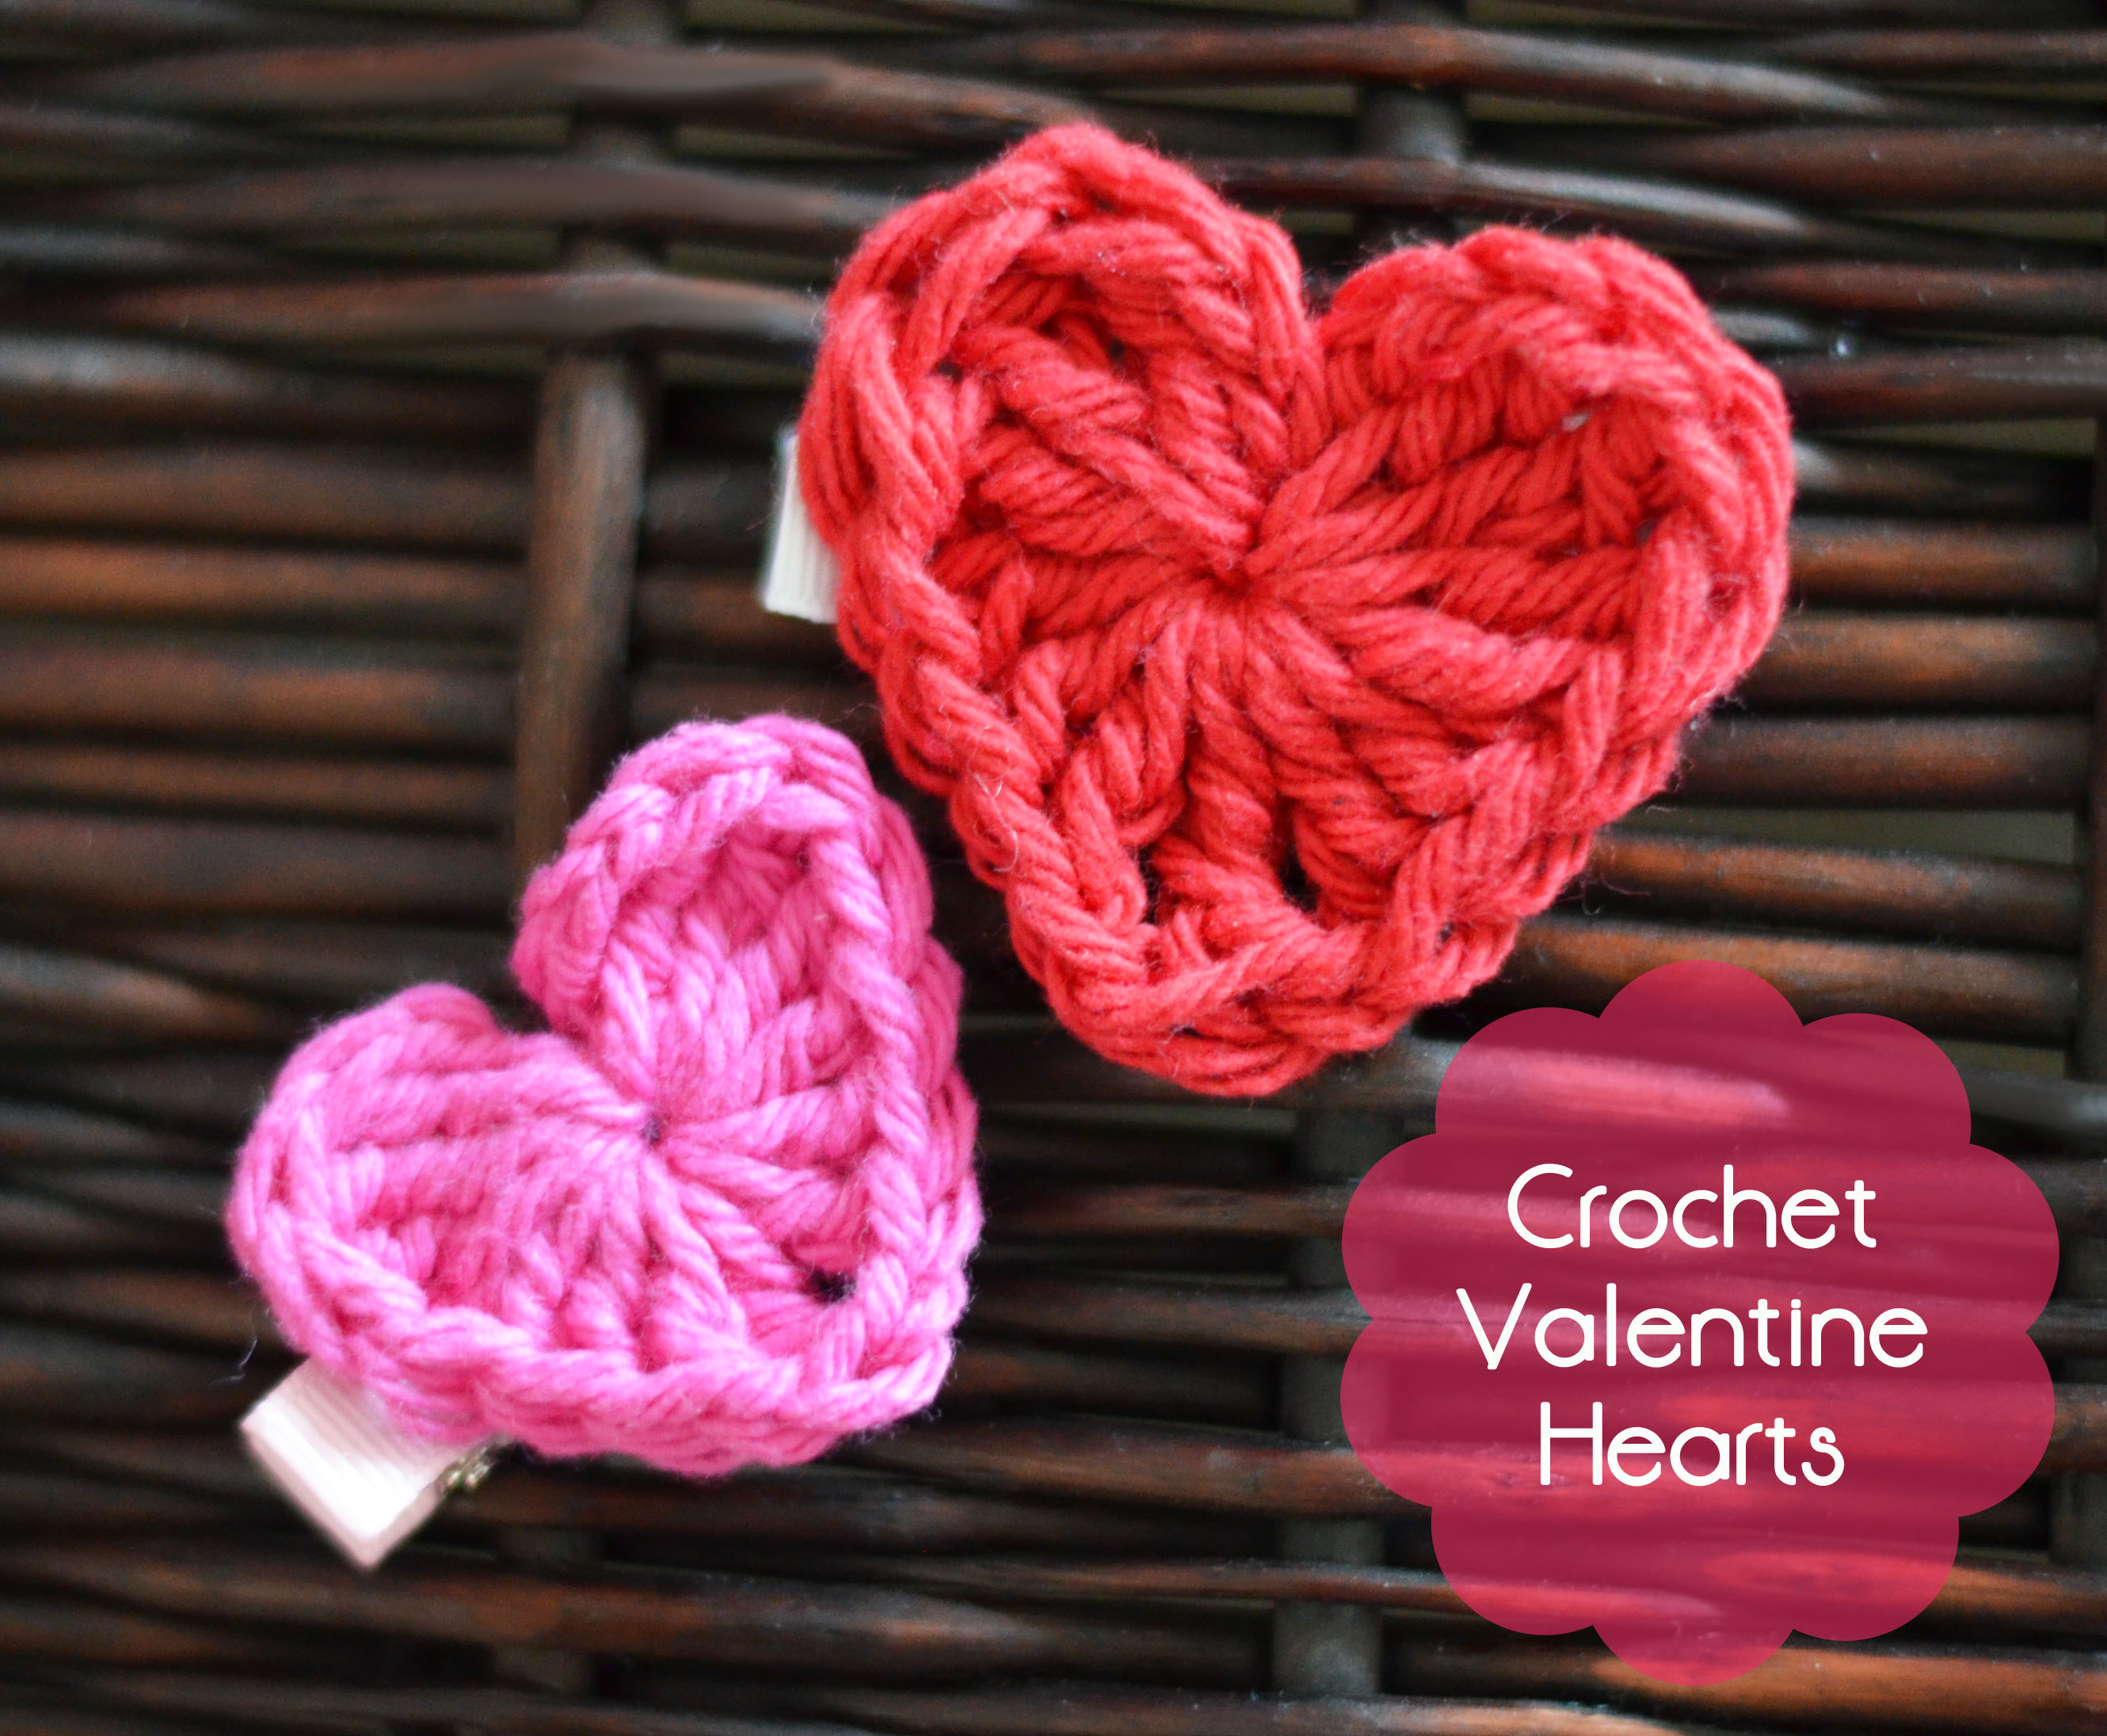 crochet heart gallery | craftgawker